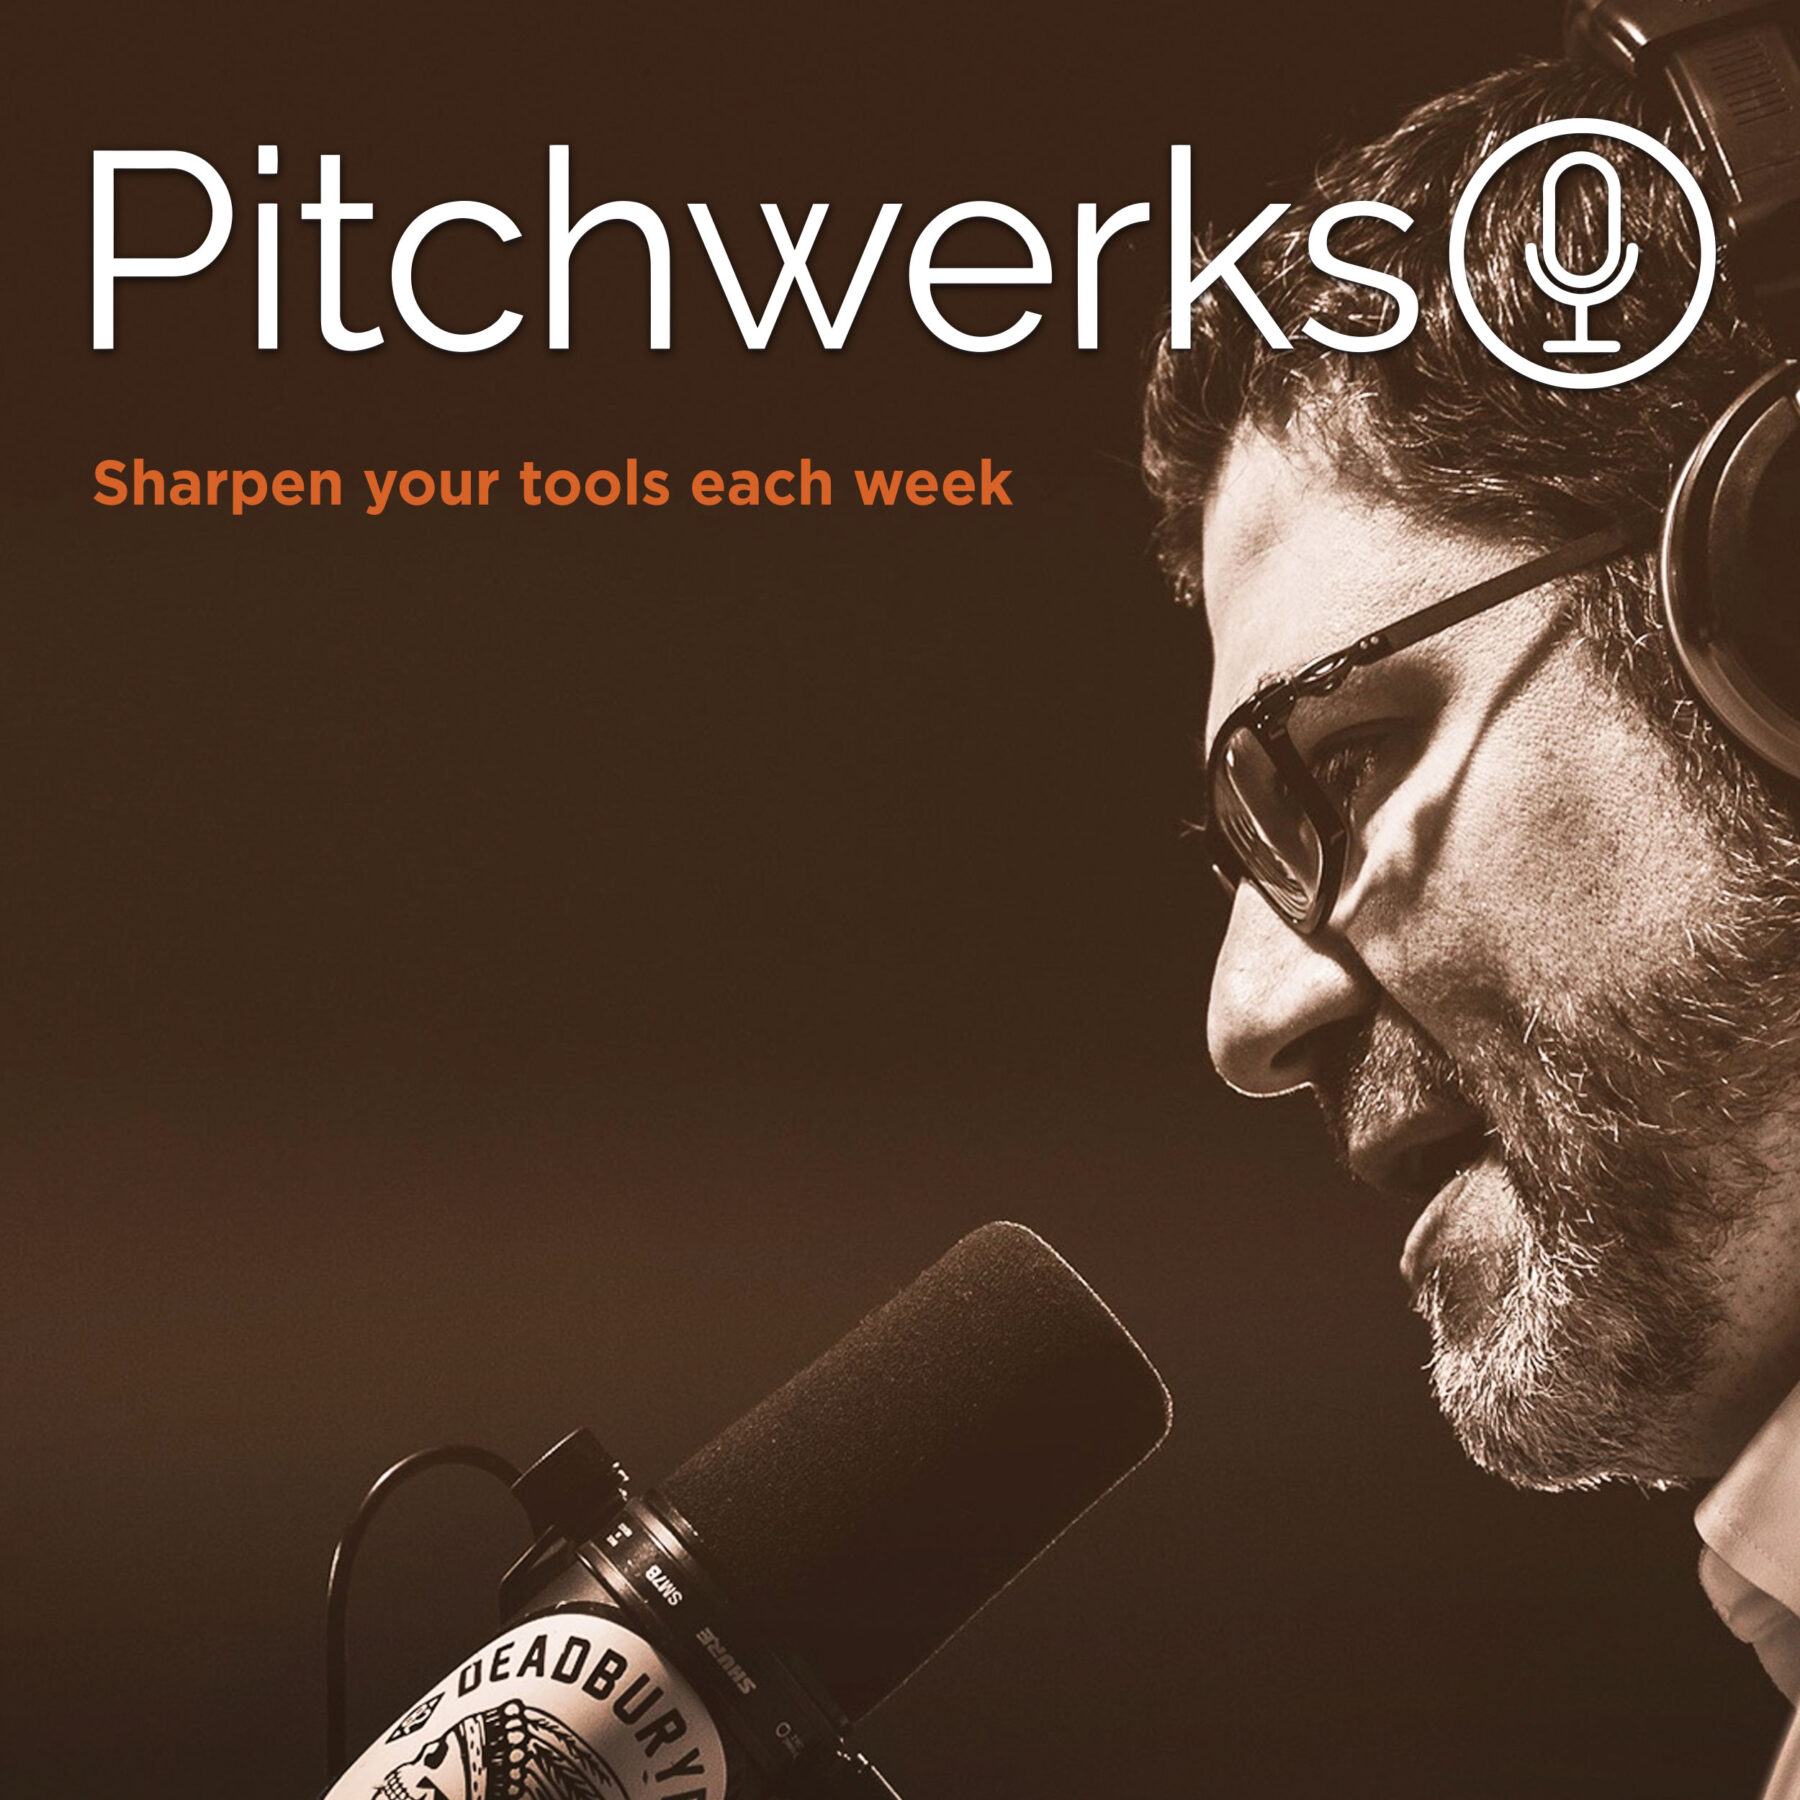 Postindustrial Pitchwerks Podcast